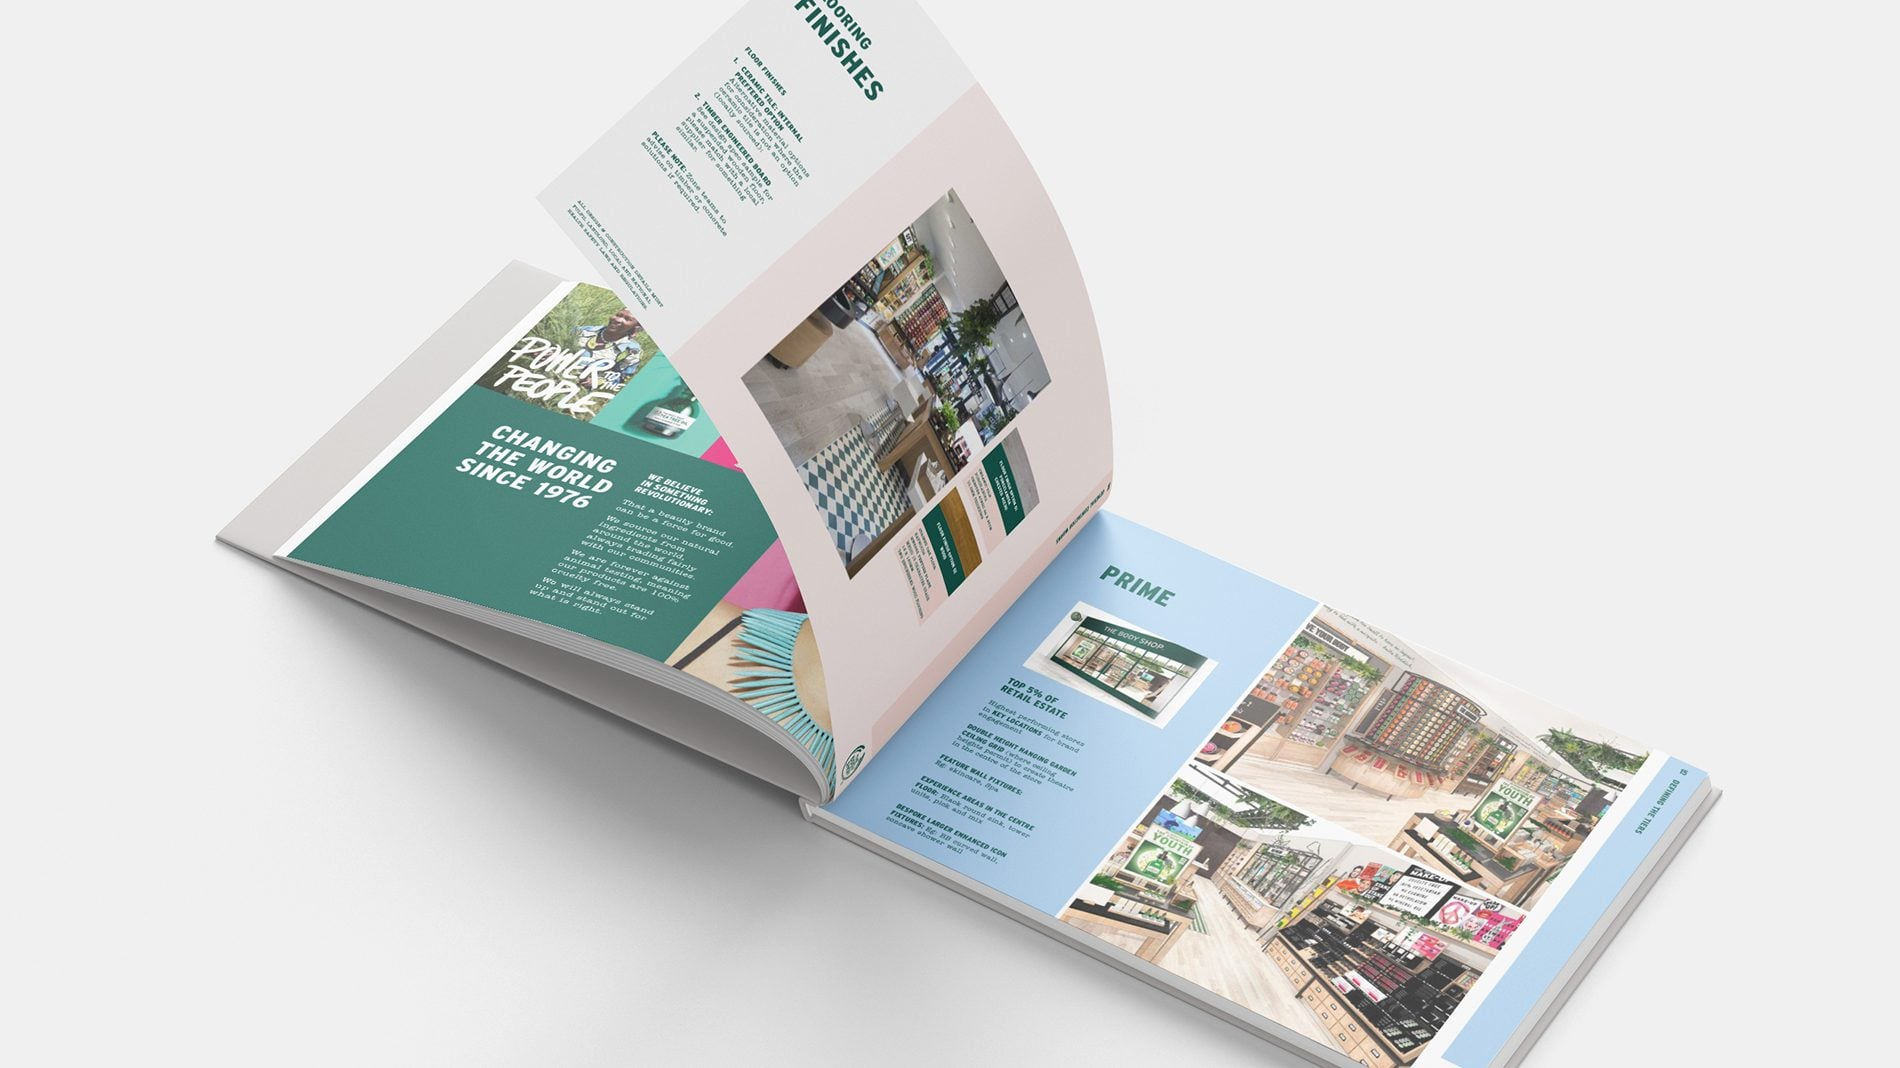 open spread of the body shop retail design guidelines